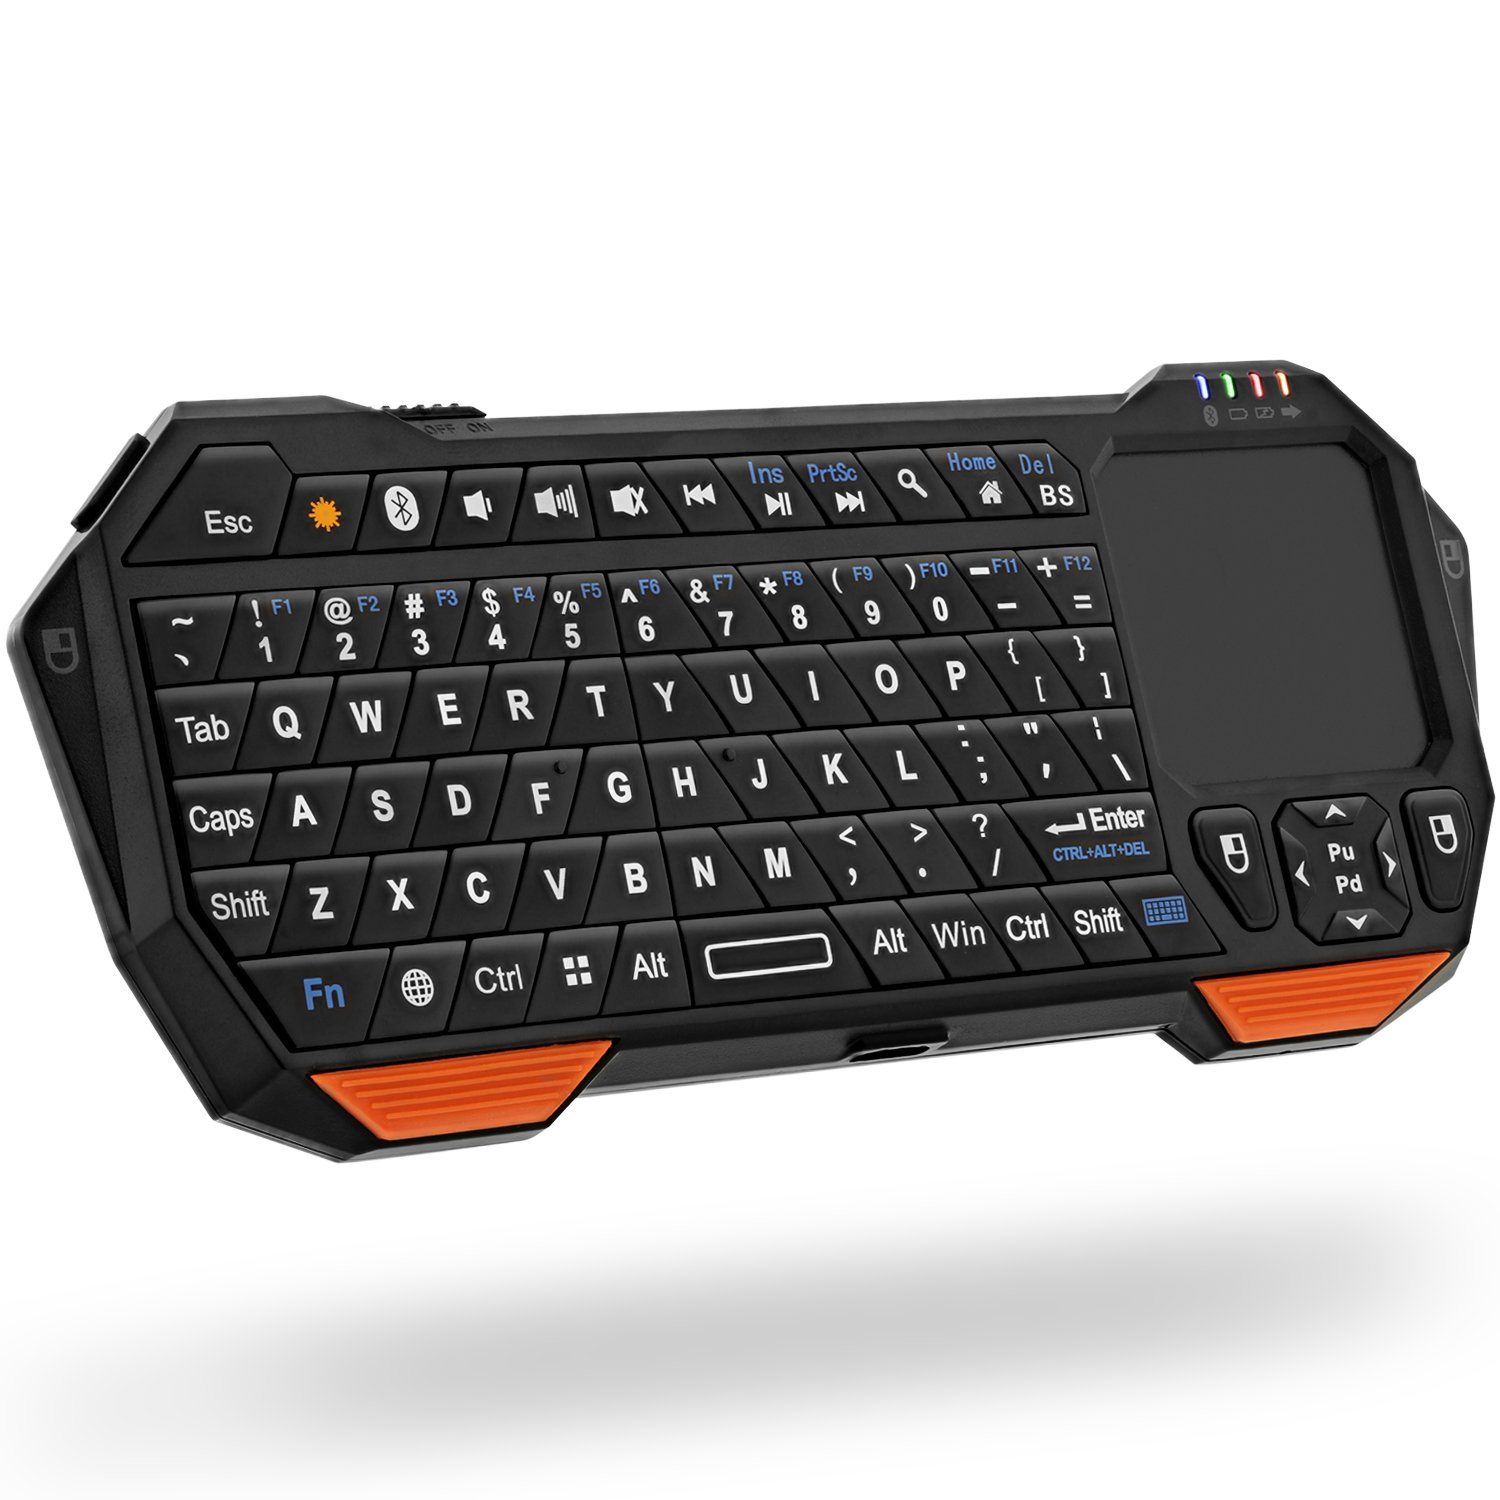 Fosmon Portable Lightweight Mini Wireless Bluetooth Keyboard Controller (QWERTY keypad) w/ Built-In Touchpad for Apple / Android / Windows Smartphones, Tablets, PS4, Laptop, Notebook - Black & Orange